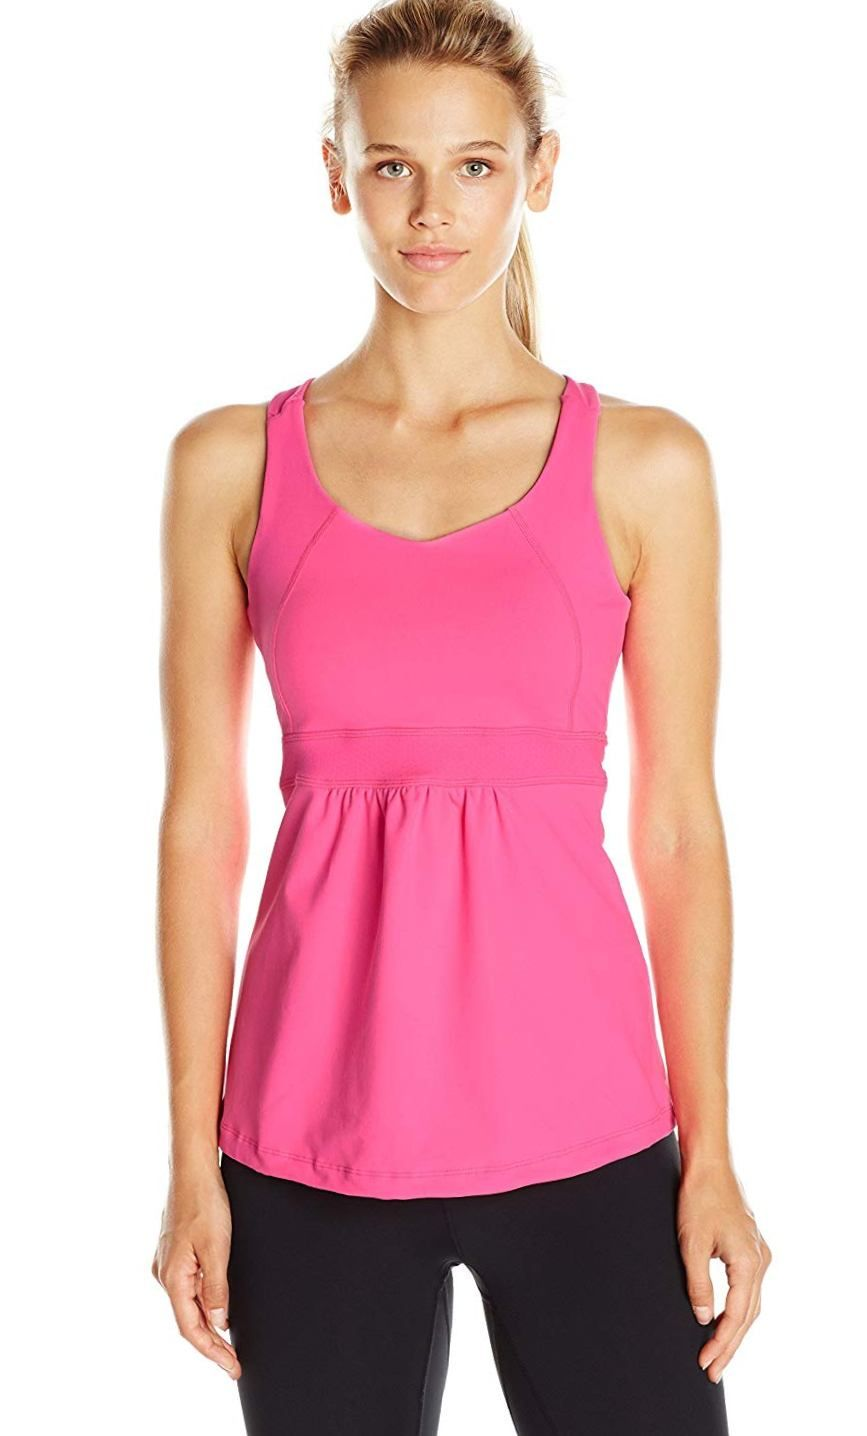 a7a86cb15a4 Colosseum Coral Way Tank Top With Built In Bra: Racerback with ...